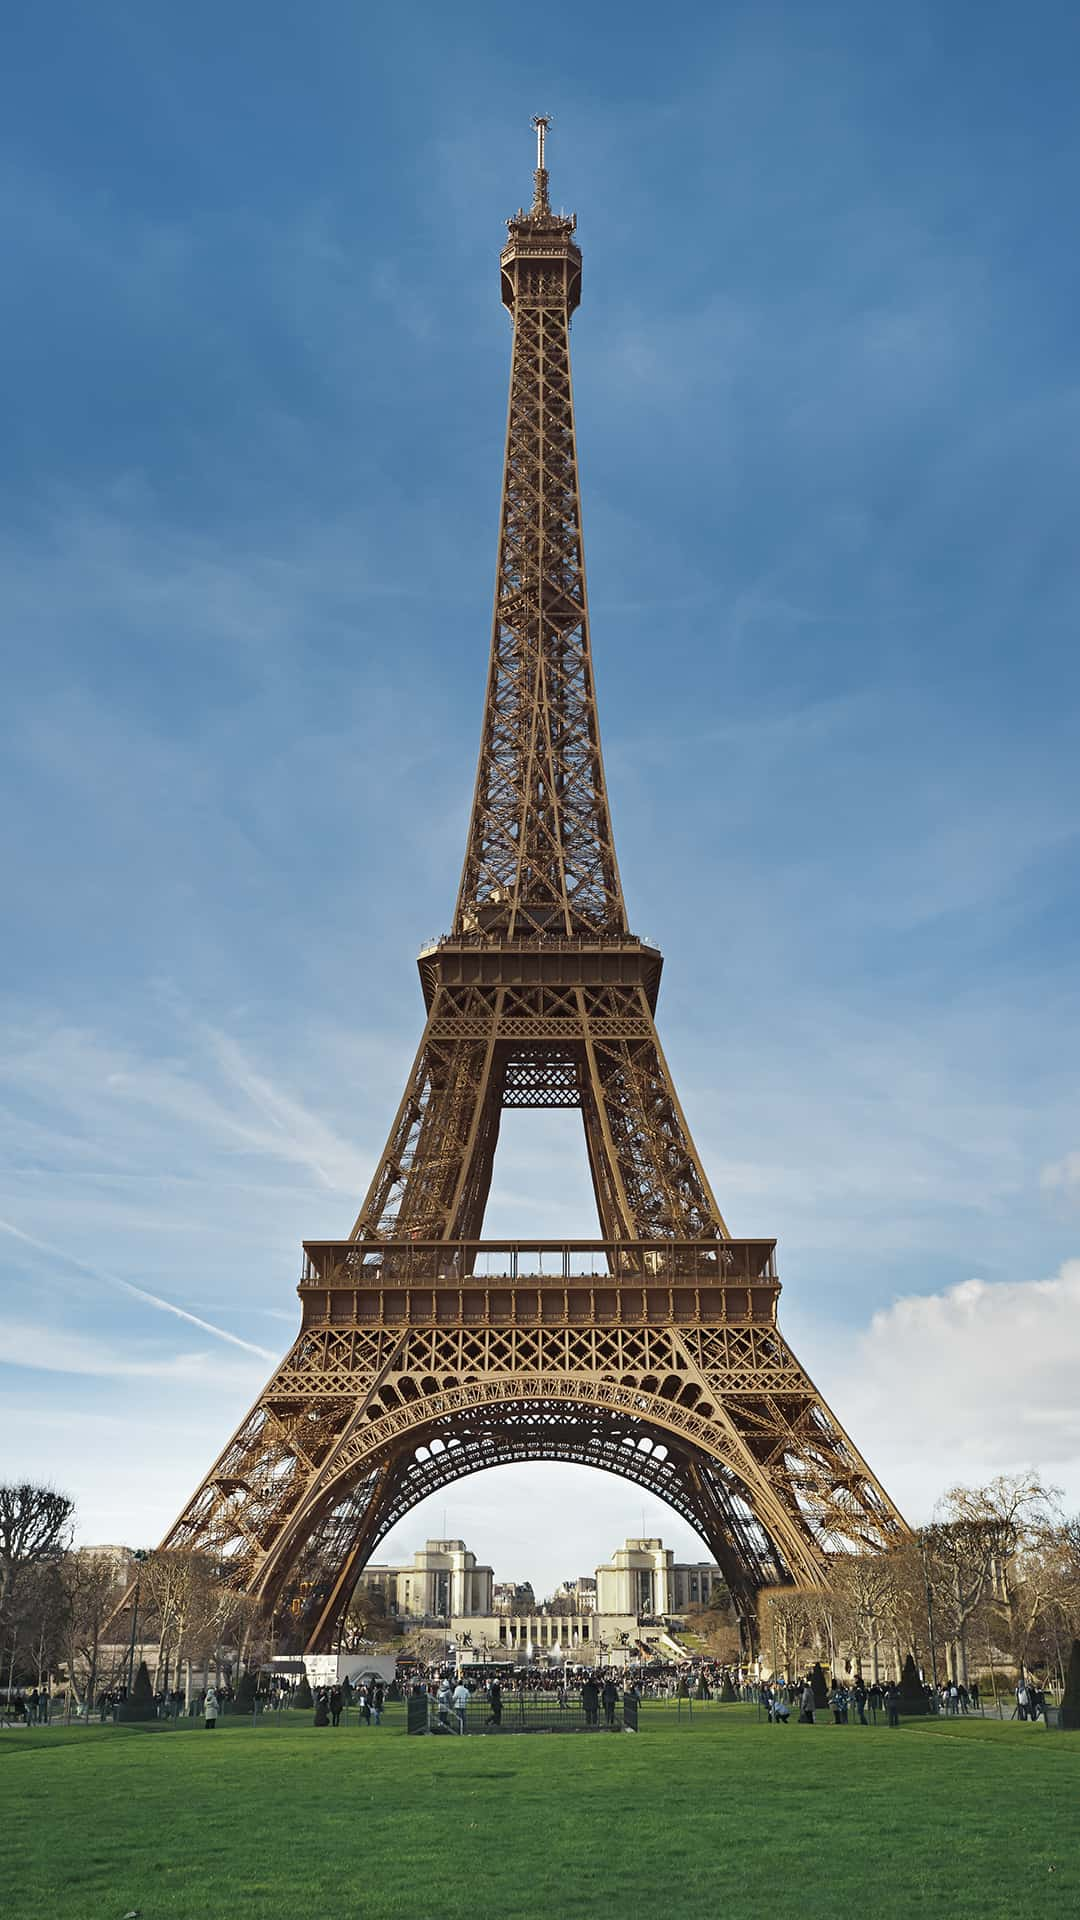 Eiffel Tower Paris France Blue Sky Android Wallpaper